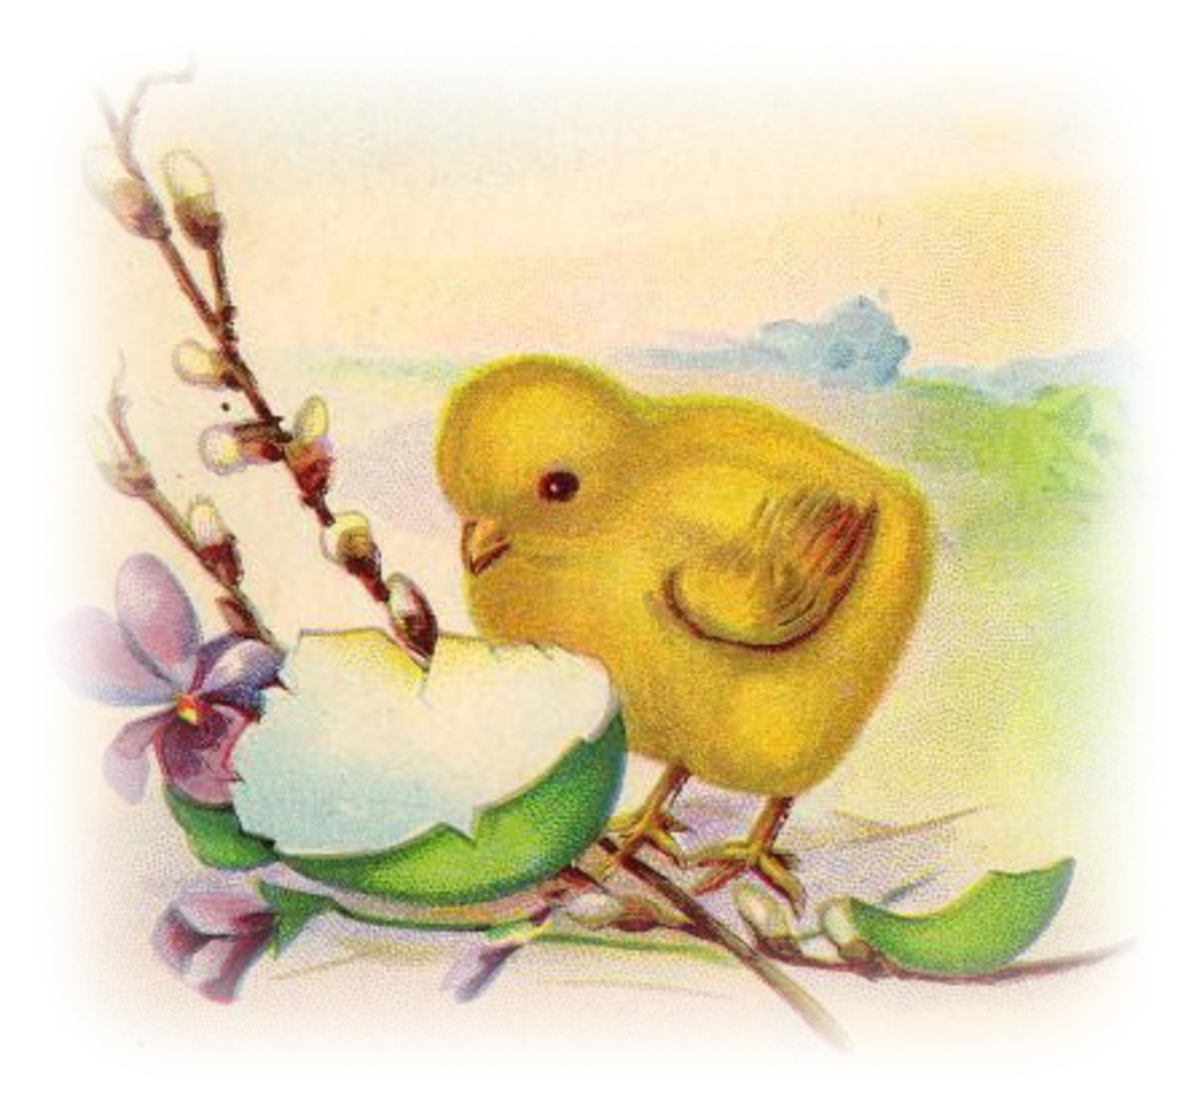 Yellow baby chick with broken Easter egg shell